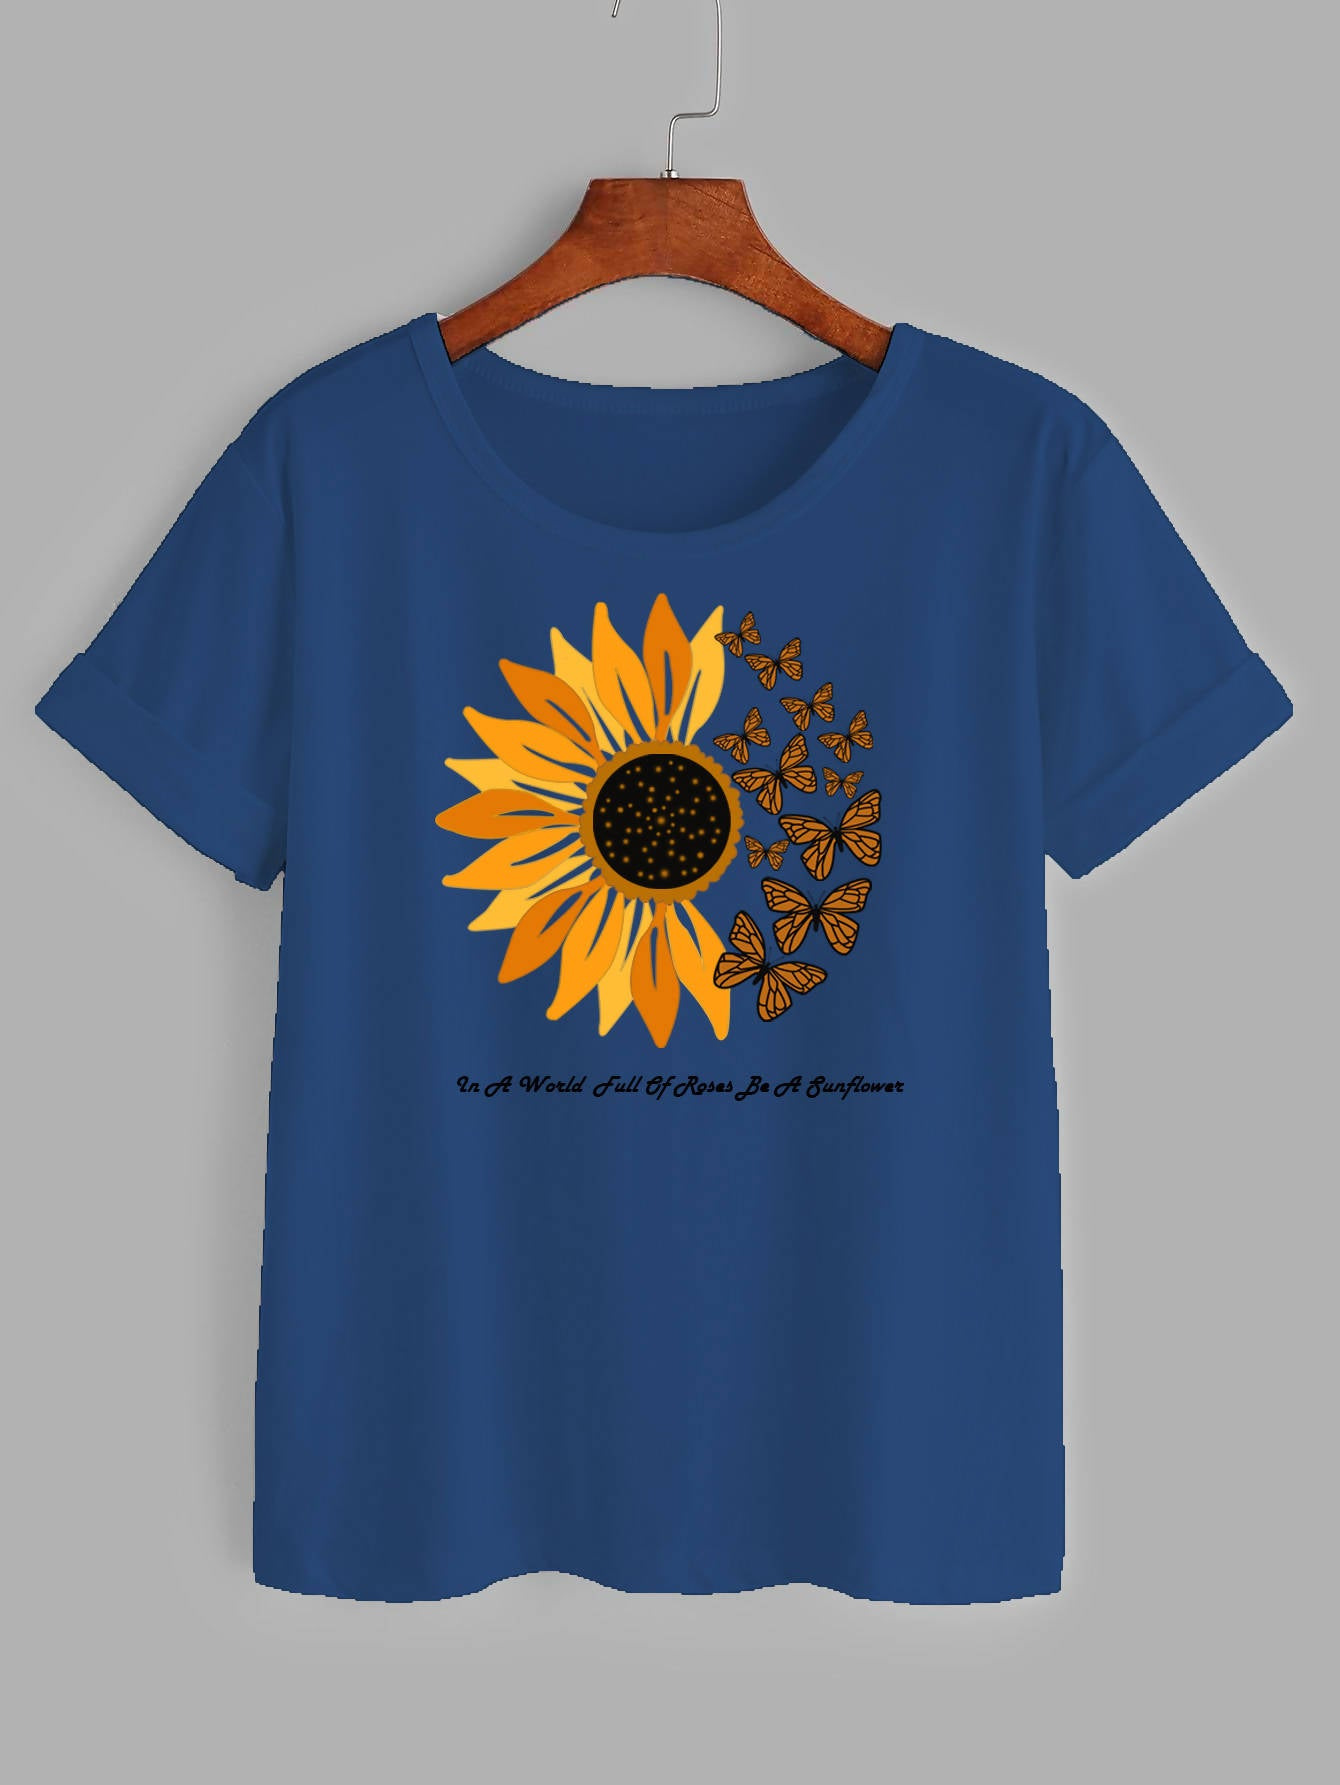 Sunflower printed Women t-shirt